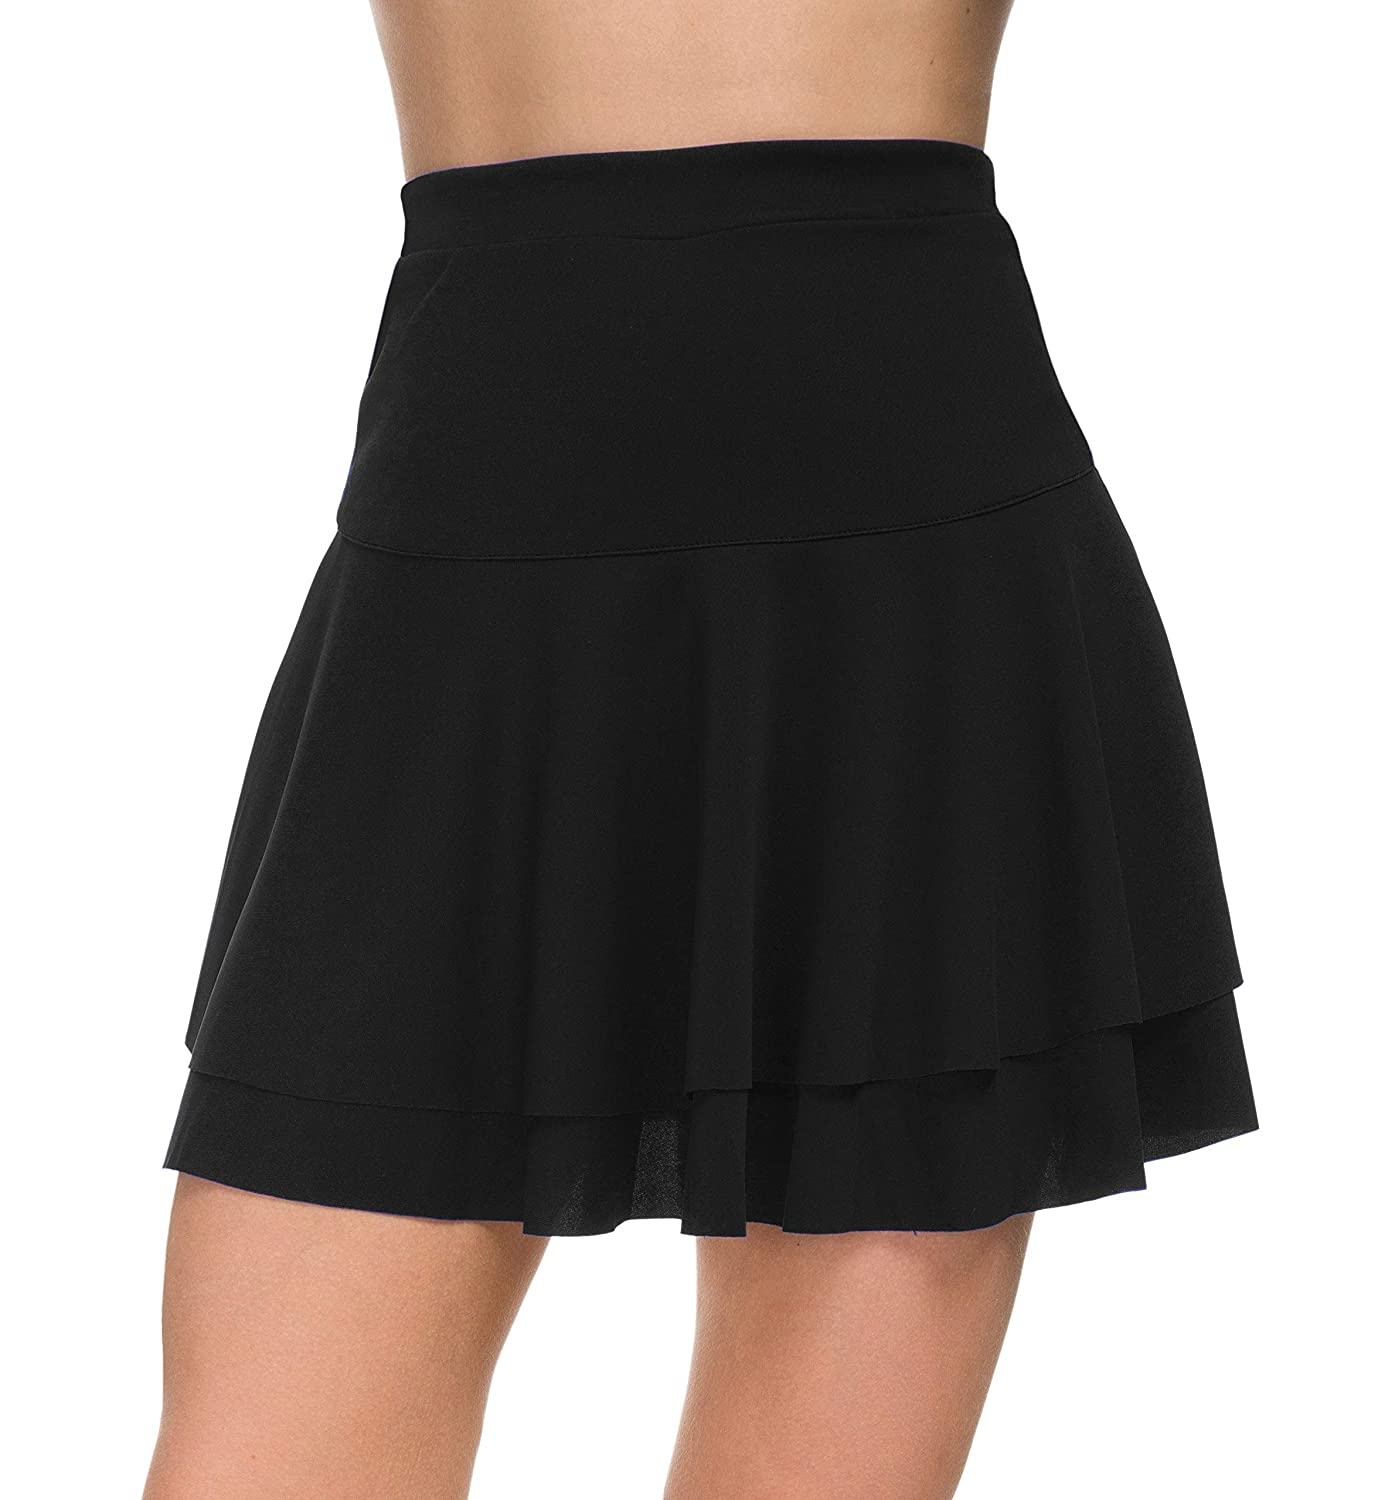 46756c317529e Afibi Casual Mini Stretch Waist Flared Plain Pleated Skater Skirt:  Amazon.ca: Clothing & Accessories